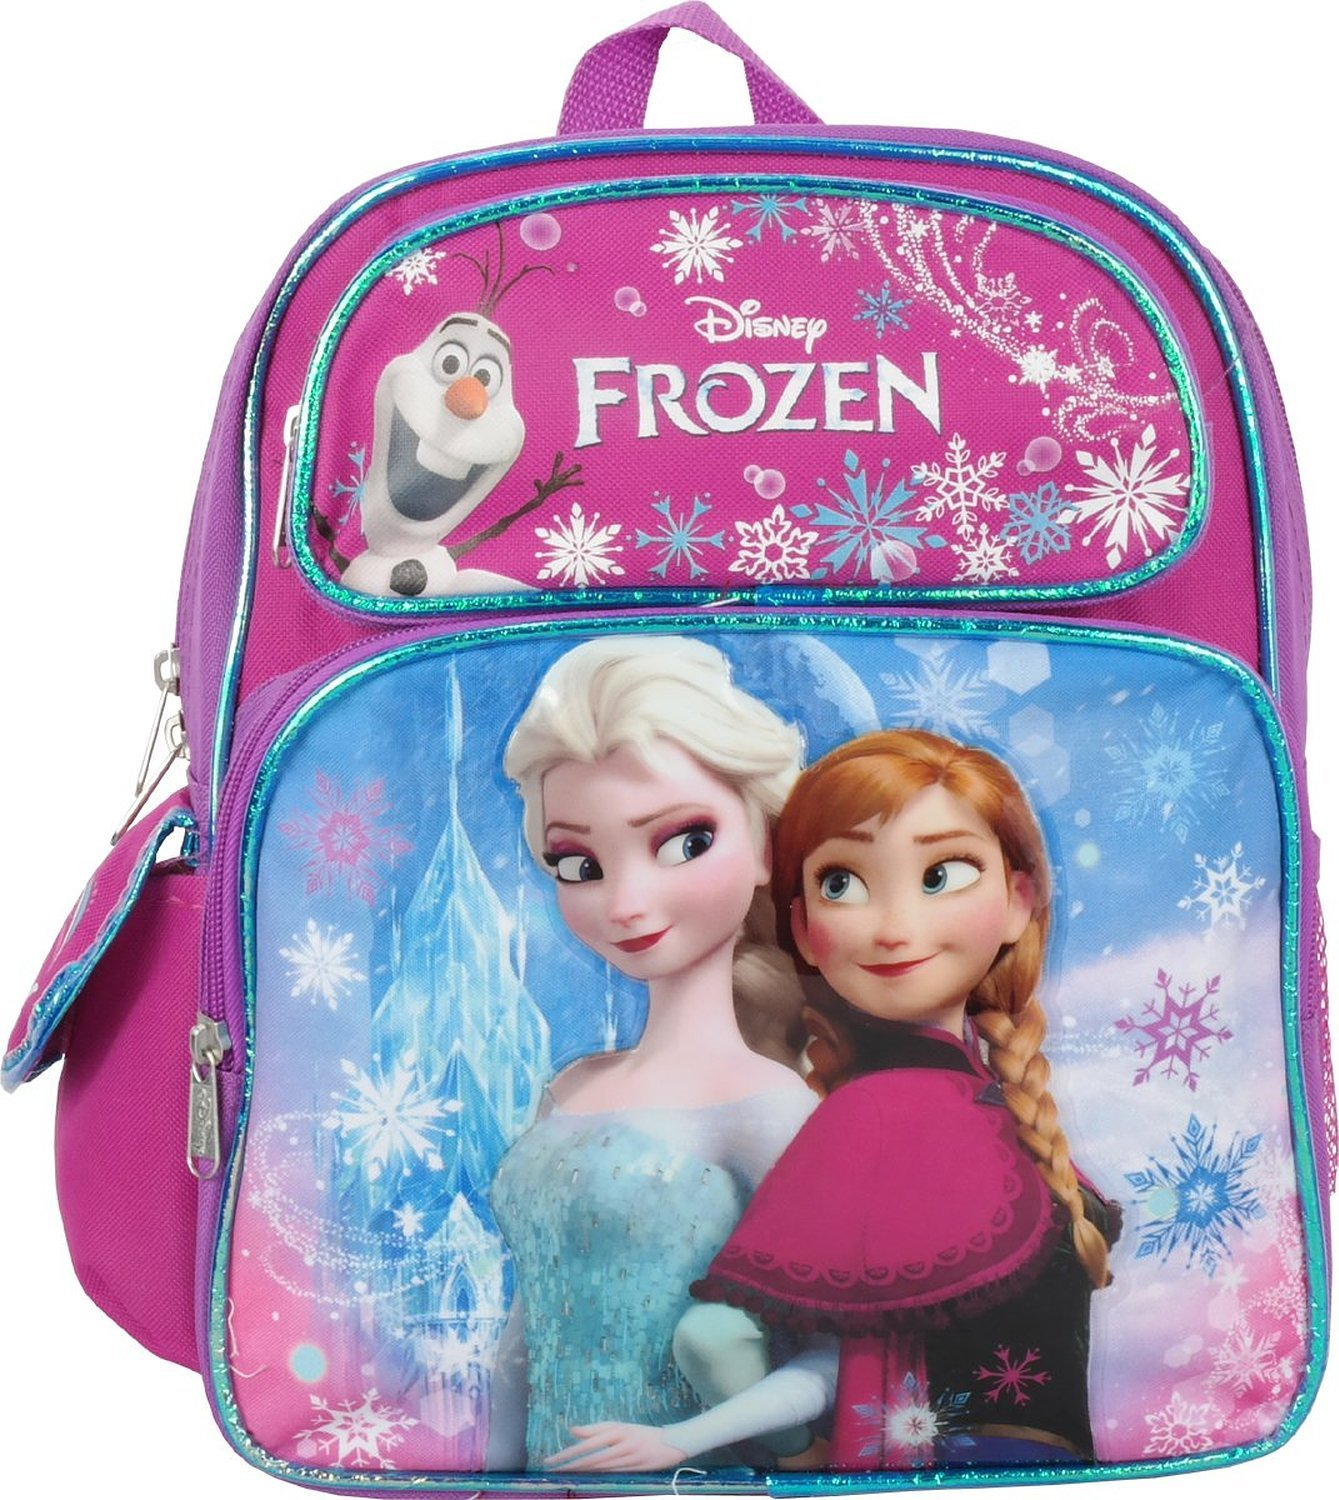 Small Backpack - Disney - Frozen Pink Elsa+Anna School Bag 659196 B010IH9NOS